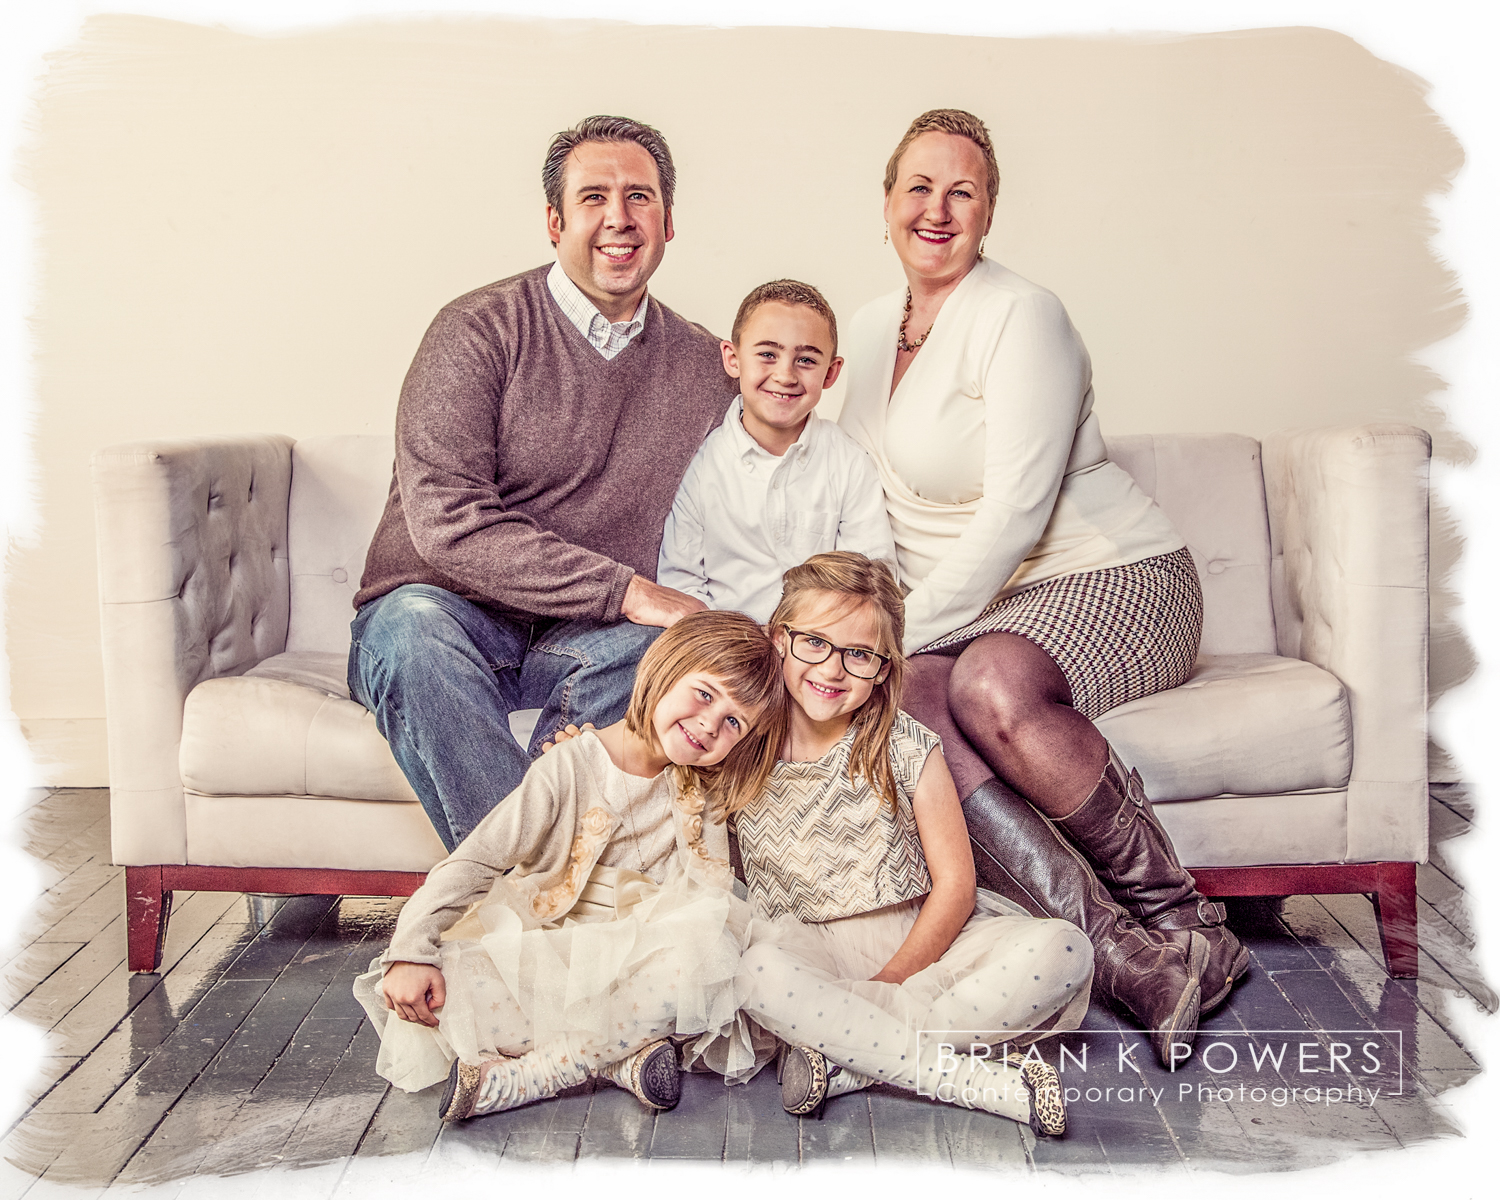 Portrait-Website McBride-Family_portrait_with_children-002.jpg